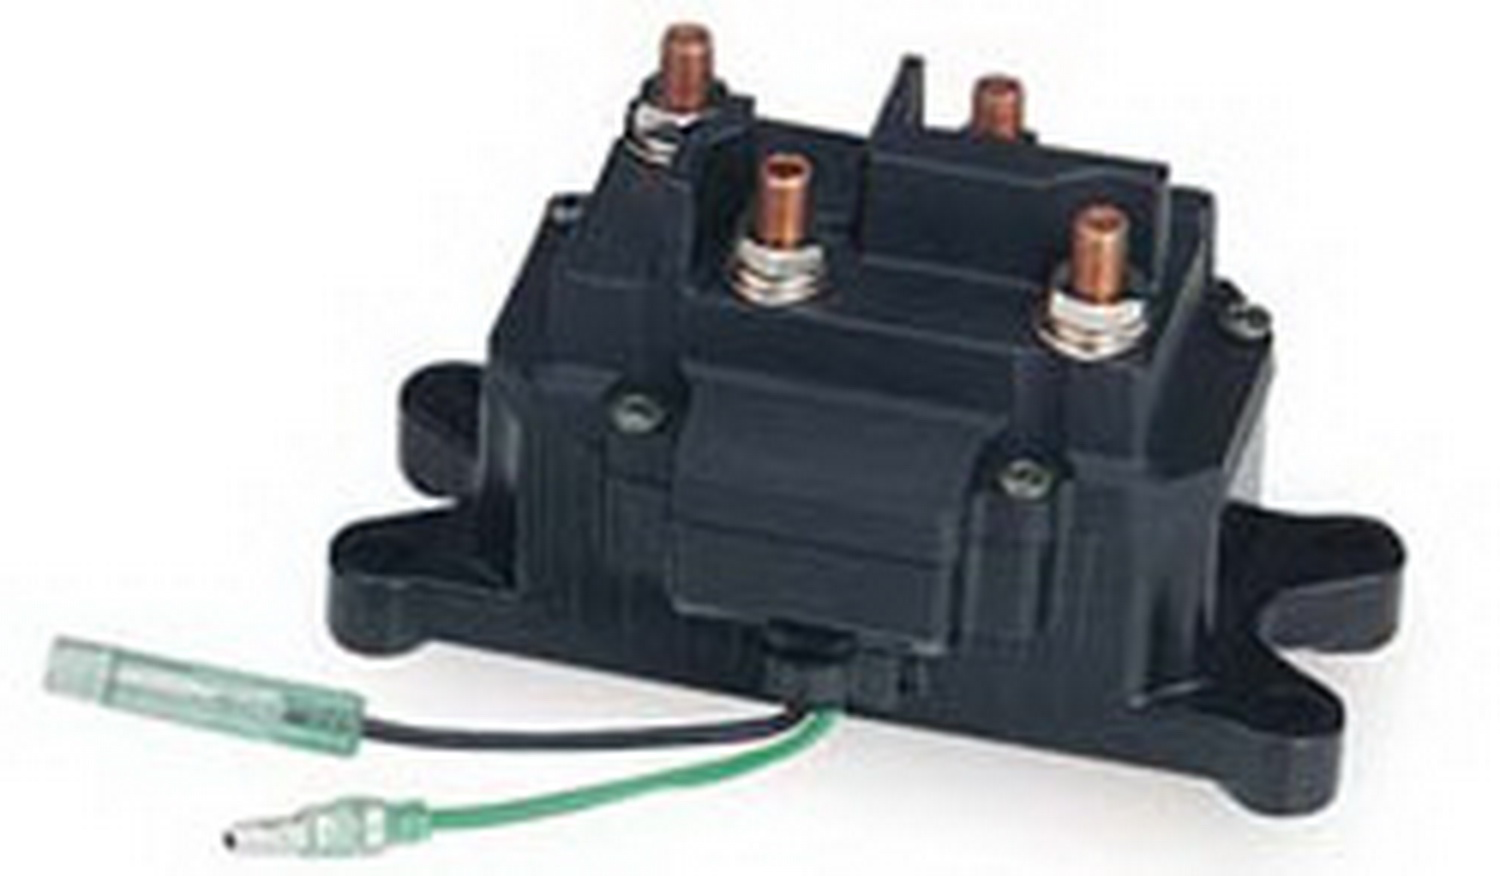 hight resolution of 63070 warn industries winch contactor for xt rt25